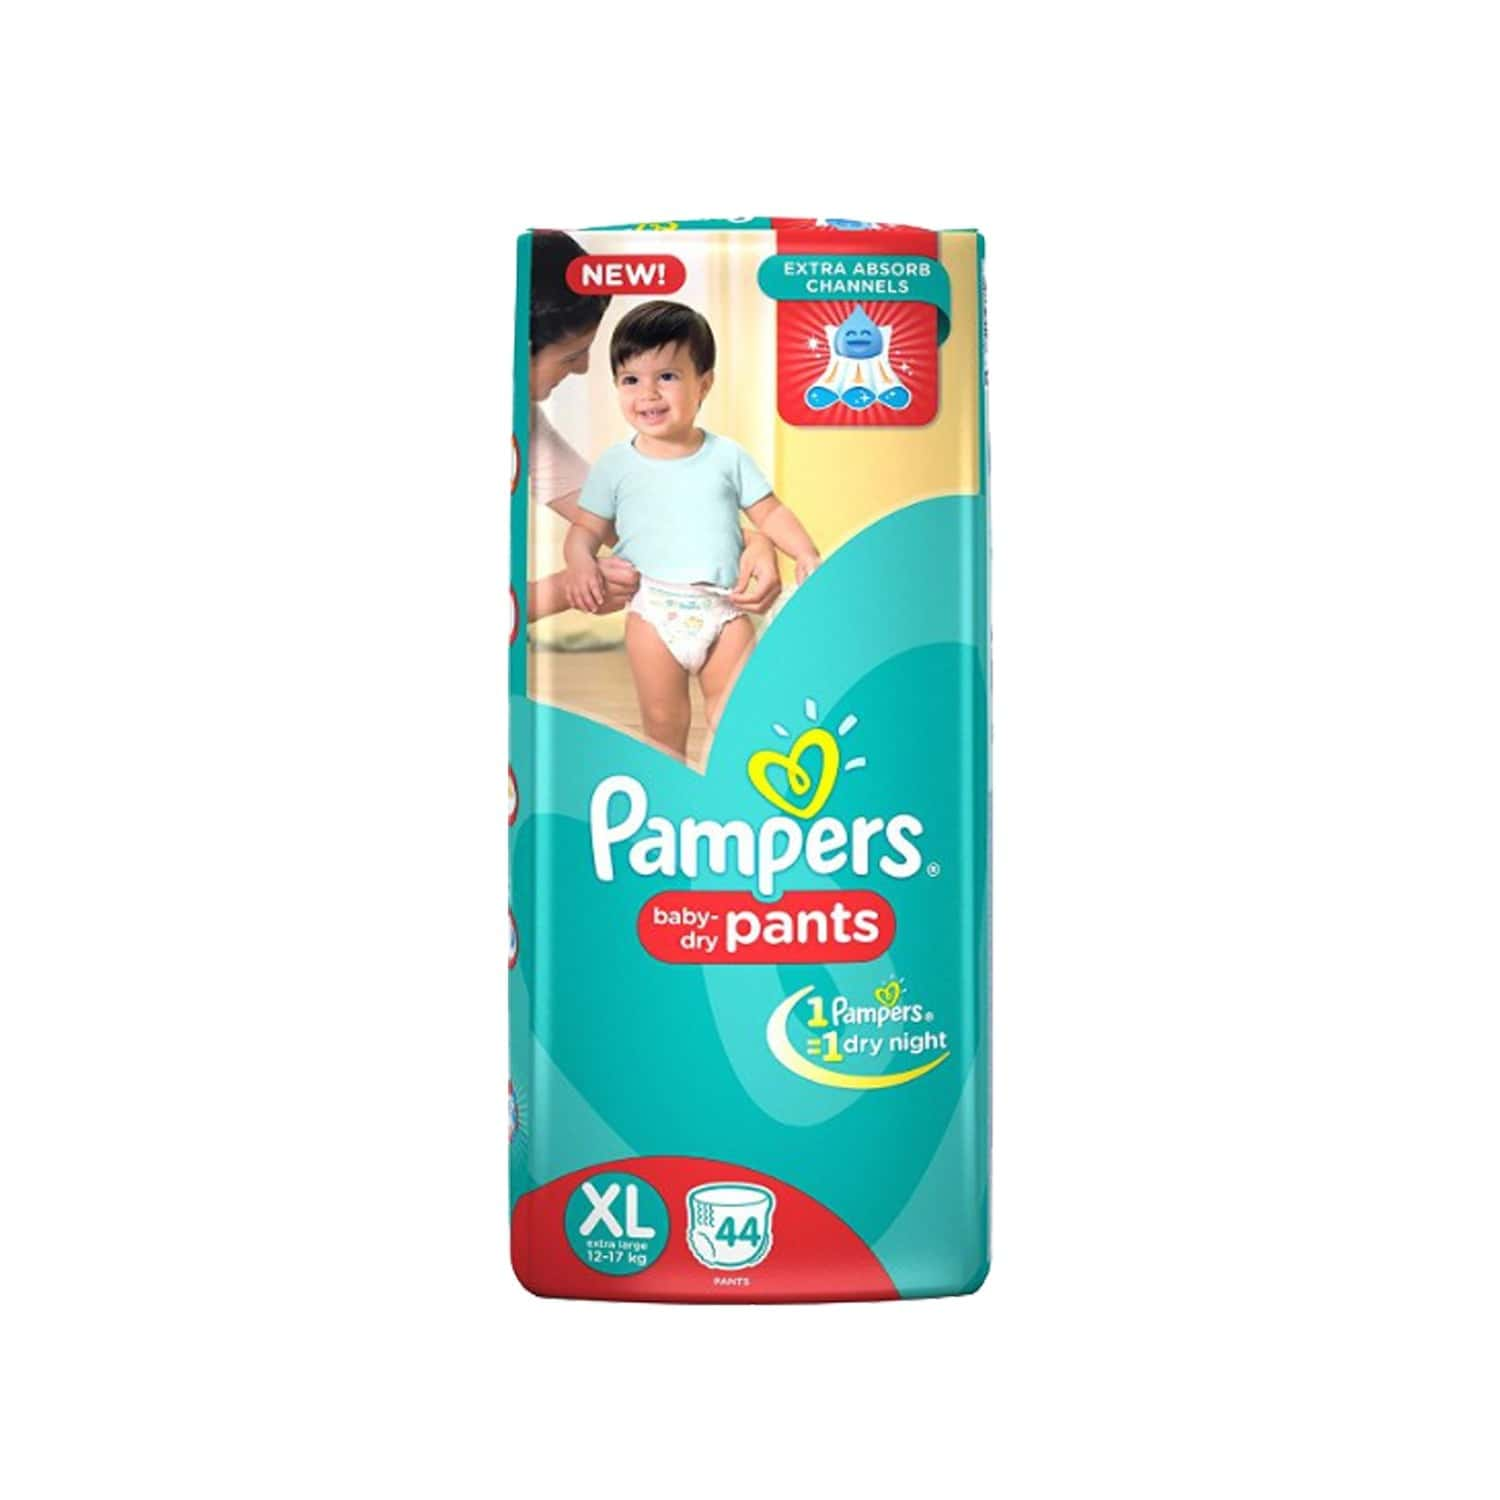 Pampers Diaper Pants Extra Large 44 Pieces